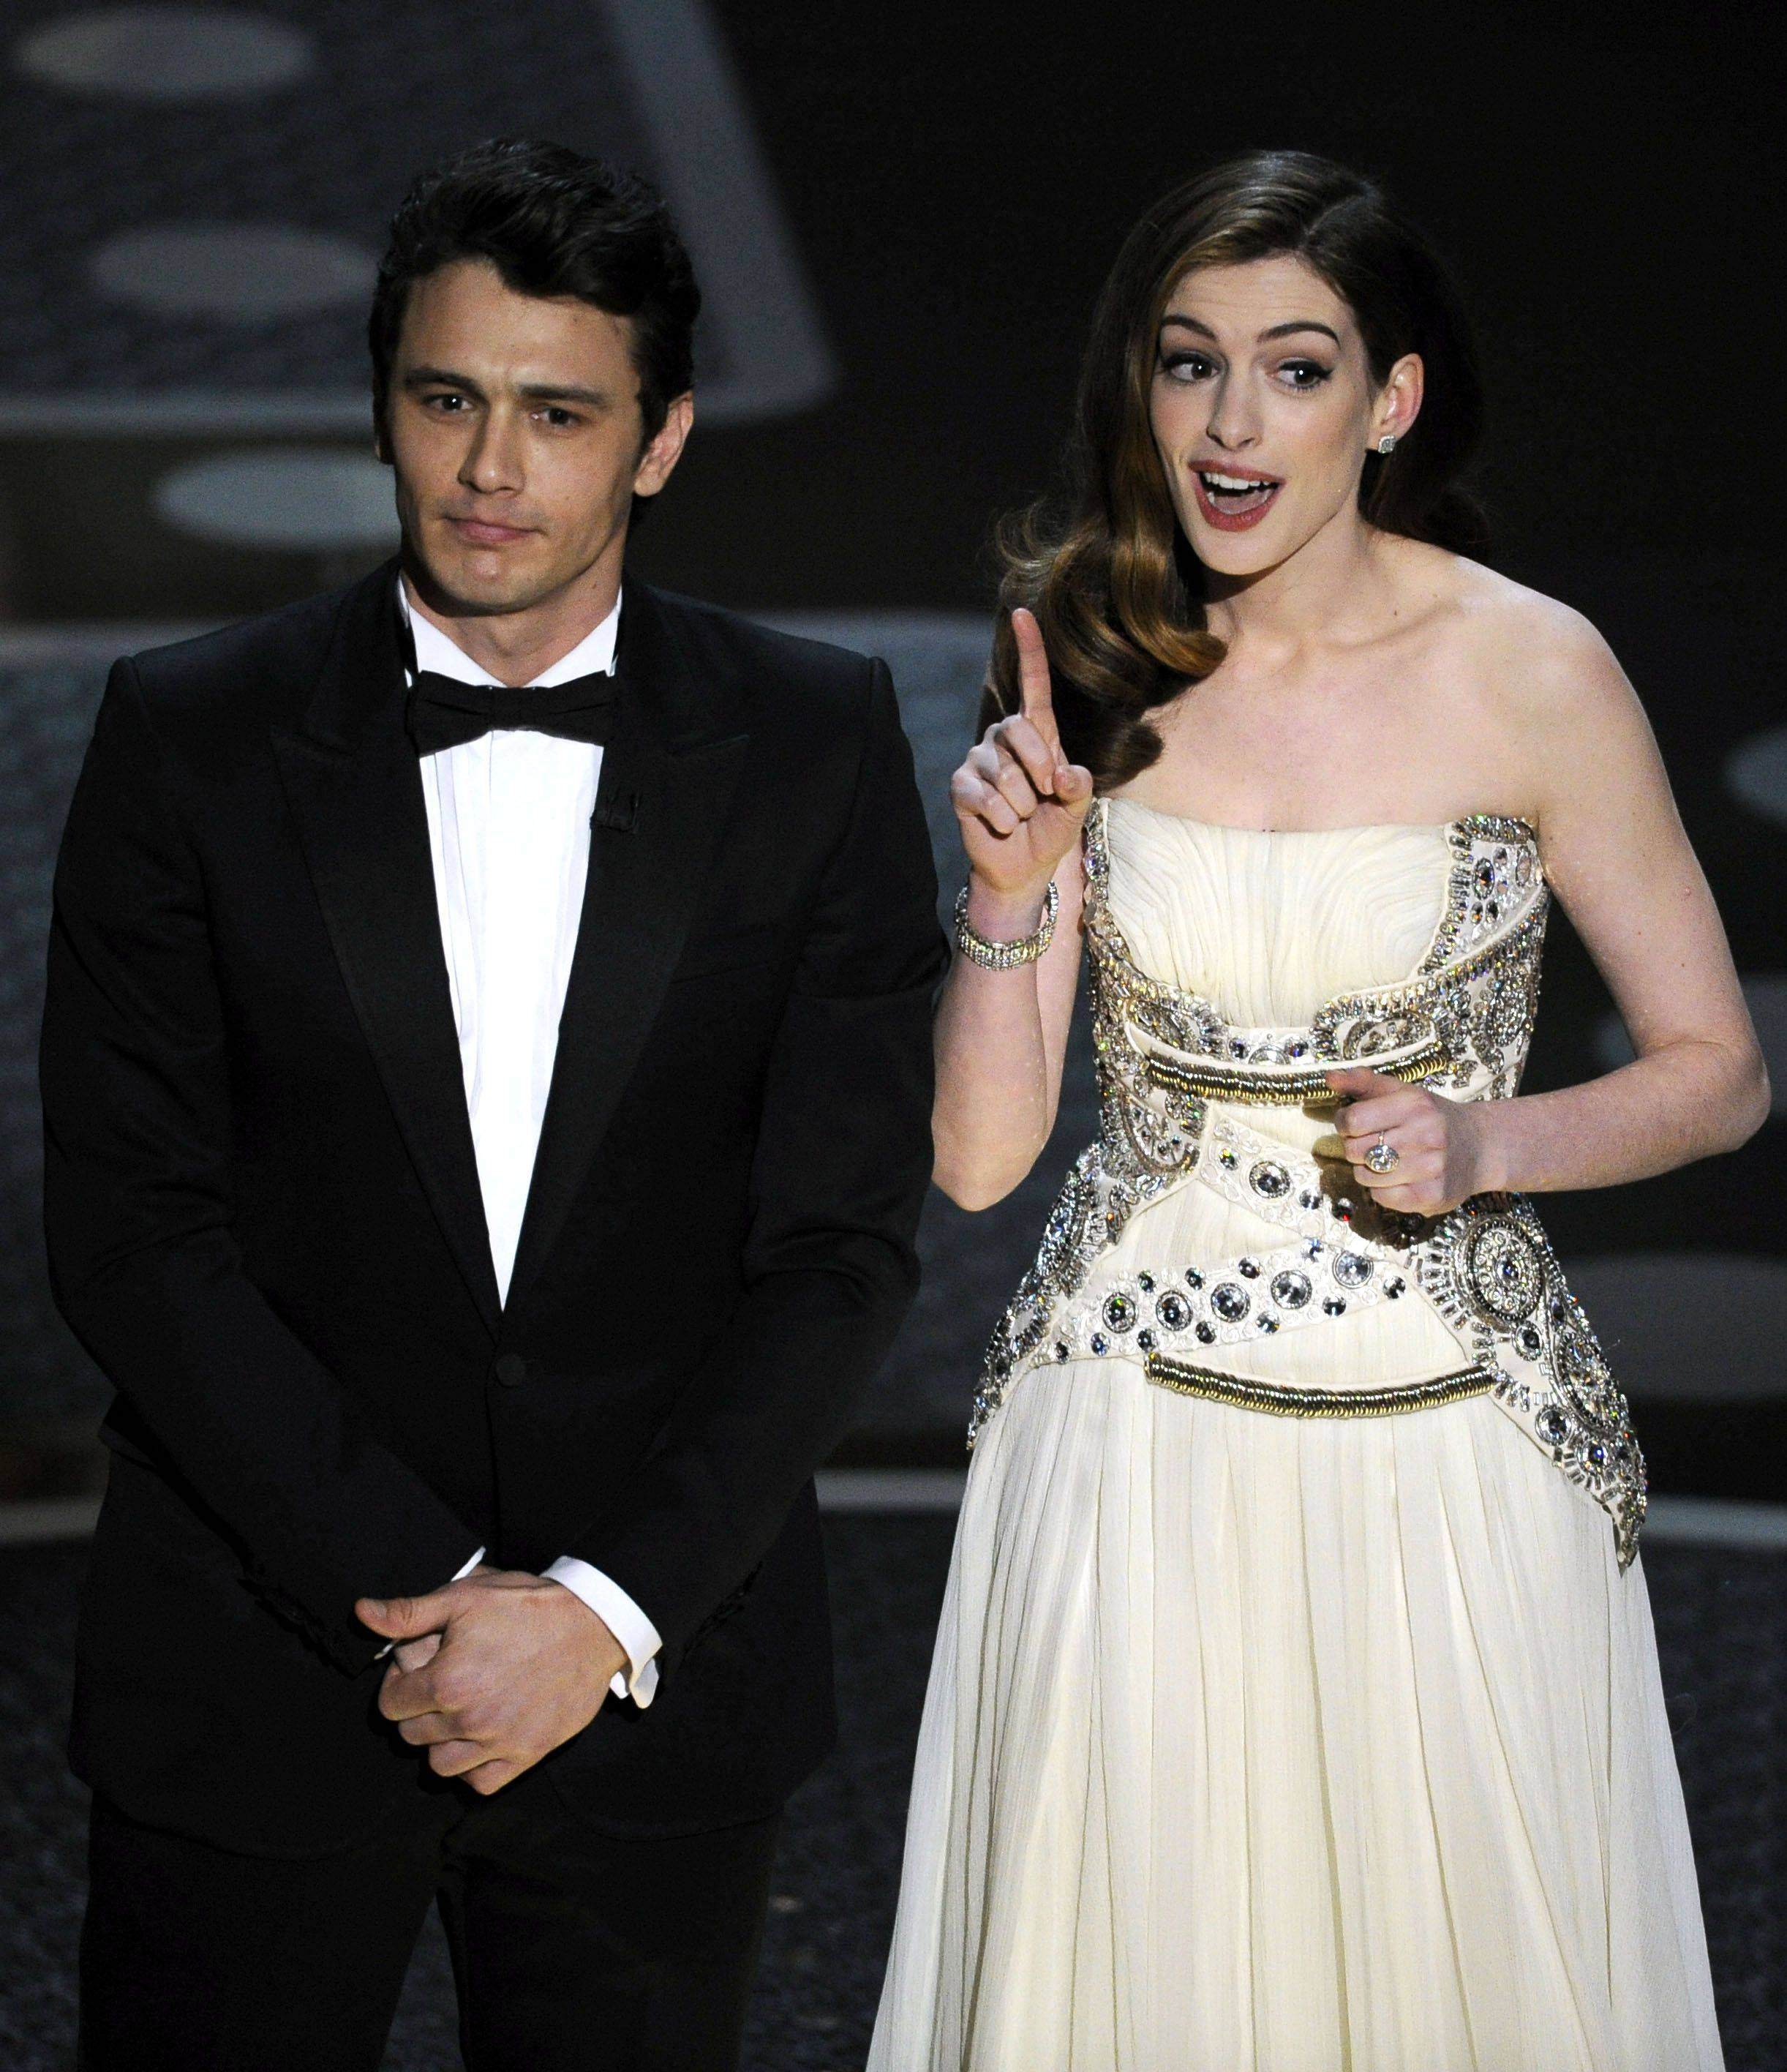 Associated PressHosts James Franco and Anne Hathaway open the show Sunday.